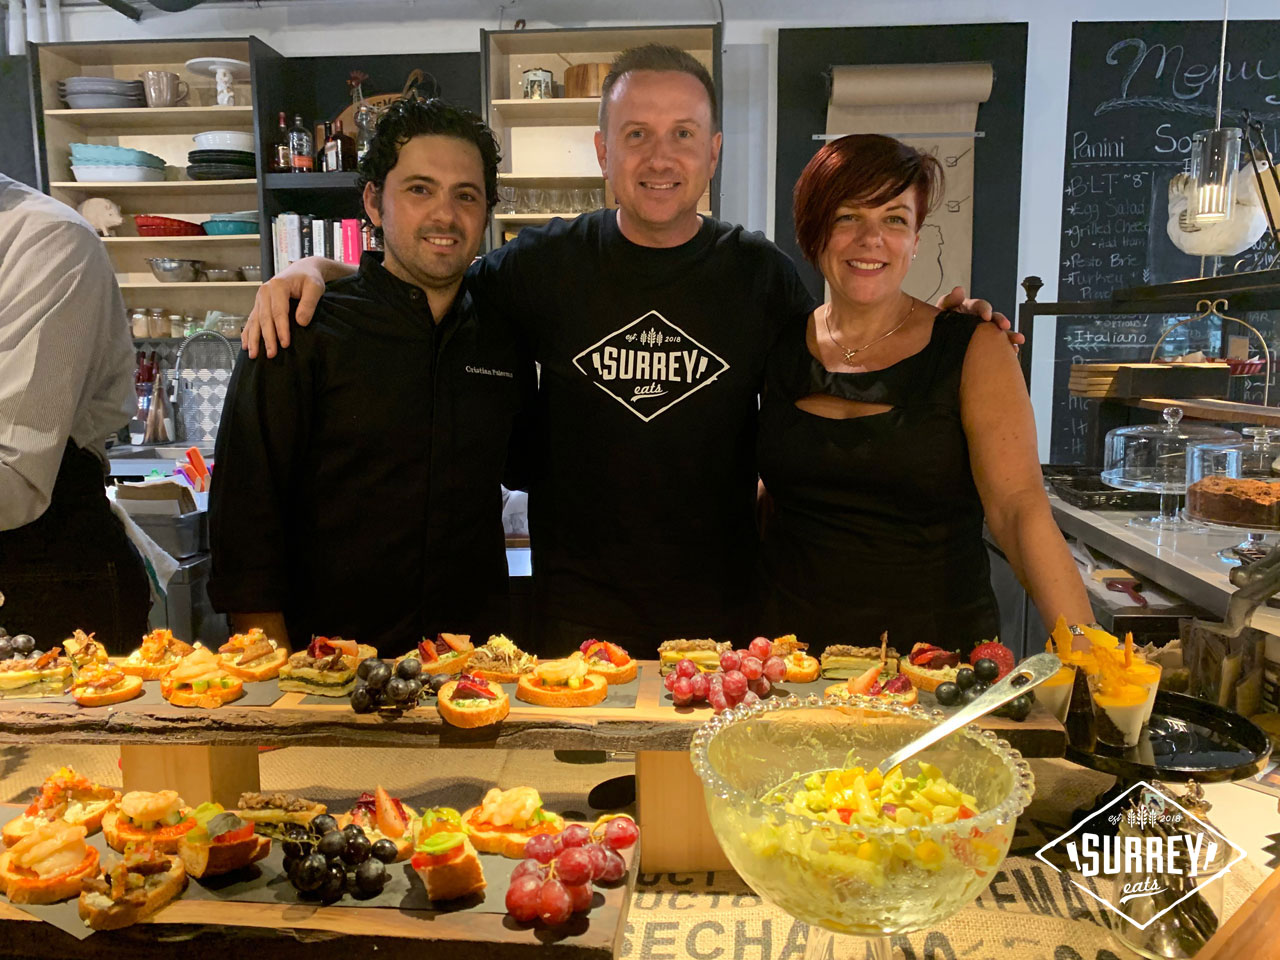 Craig from Surrey Eats poses for a photo with Chef Cristian Palermo and Modern General owner Laura Virginillo with a spread of tapas in front of them